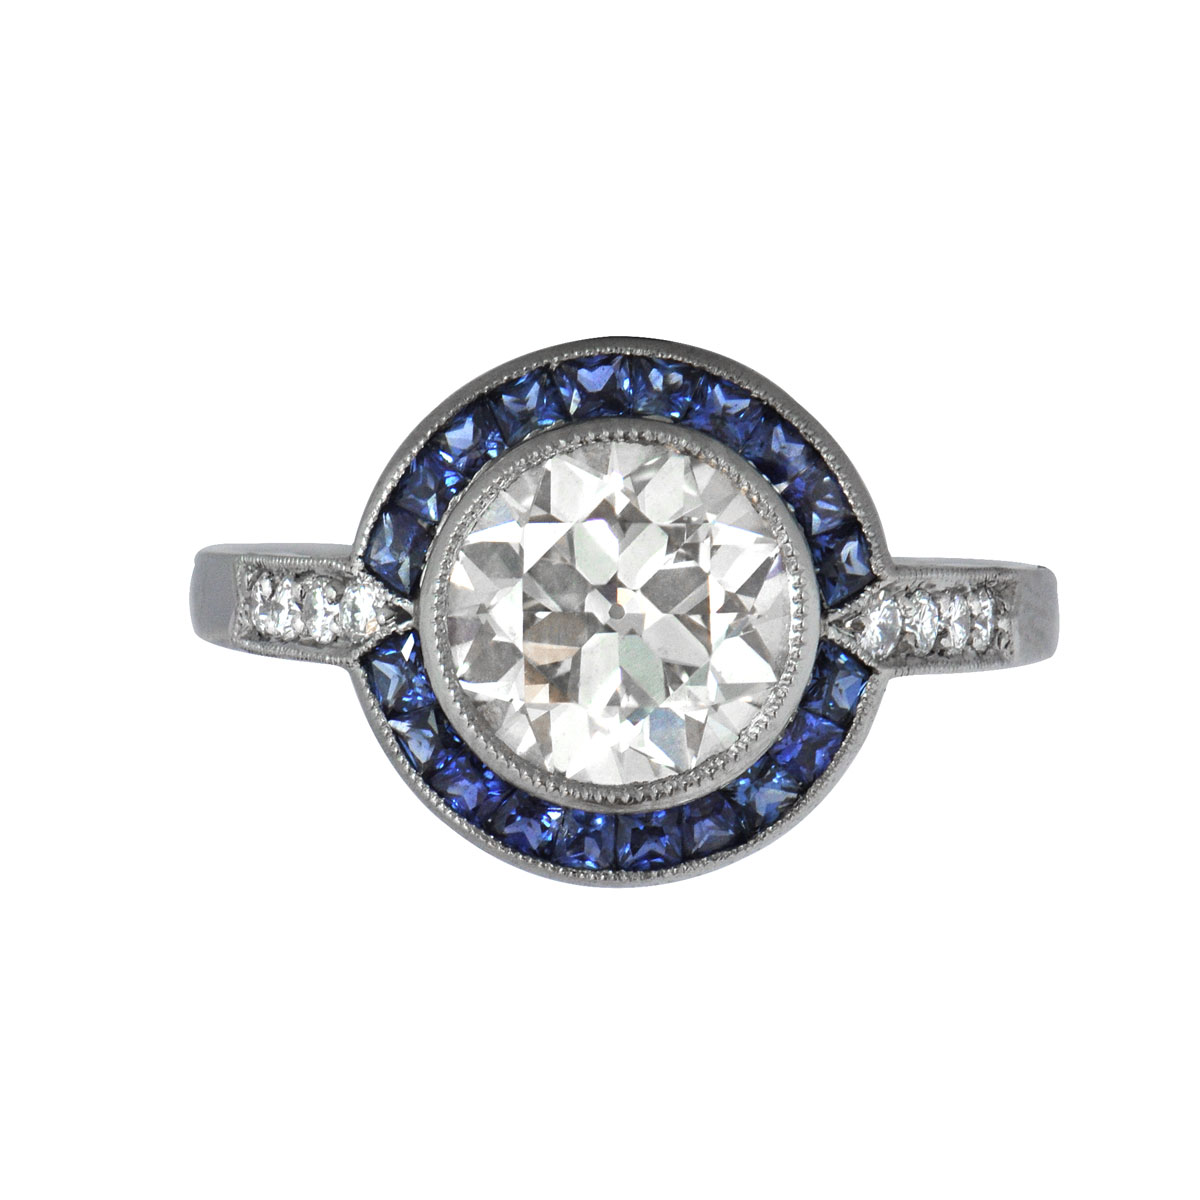 1 88ct Diamond and Sapphire Engagement Ring Estate Diamond Jewelry